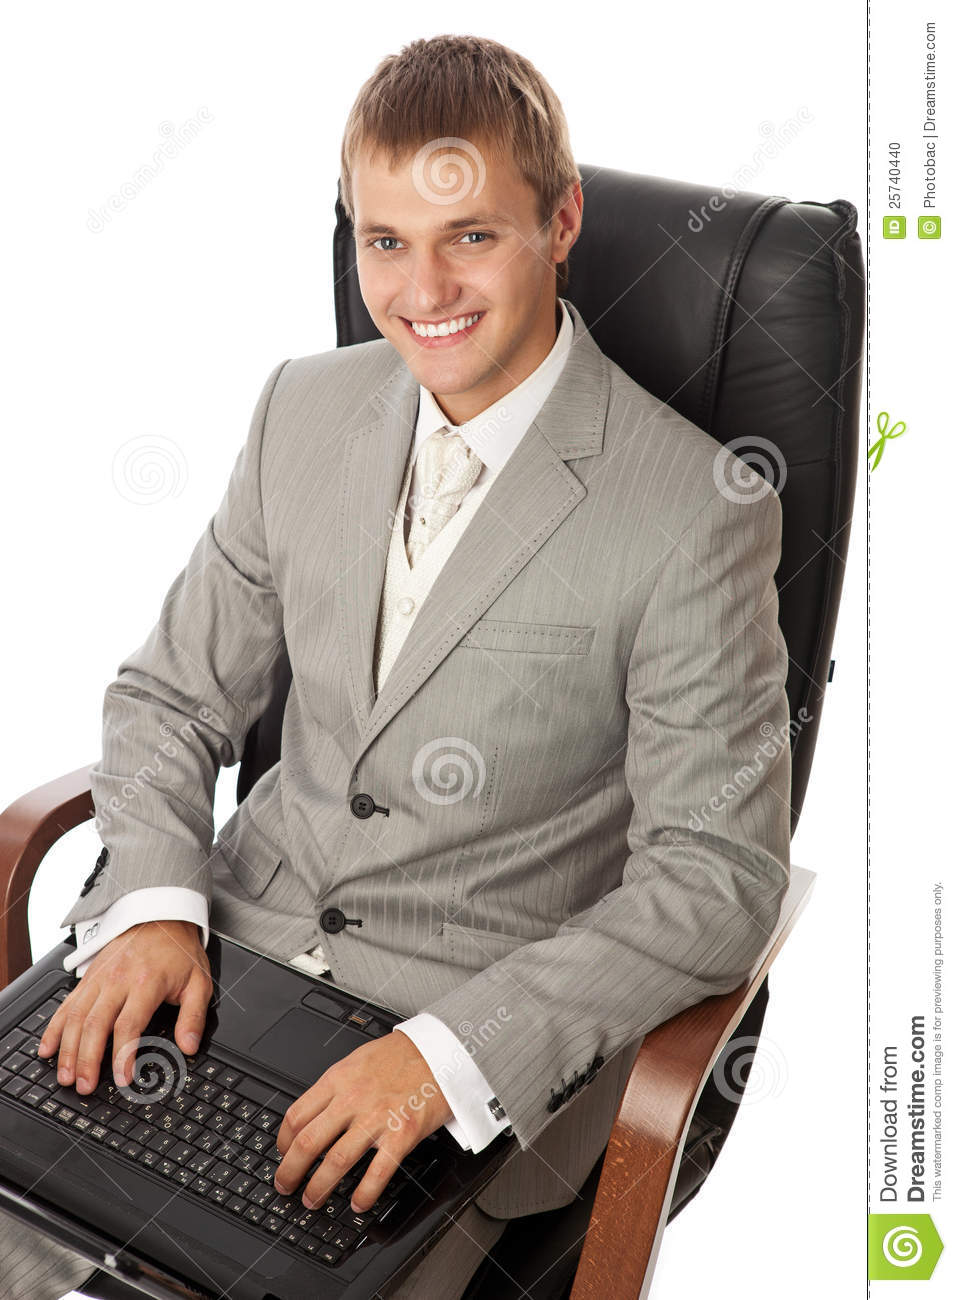 Handsome young man with a laptop